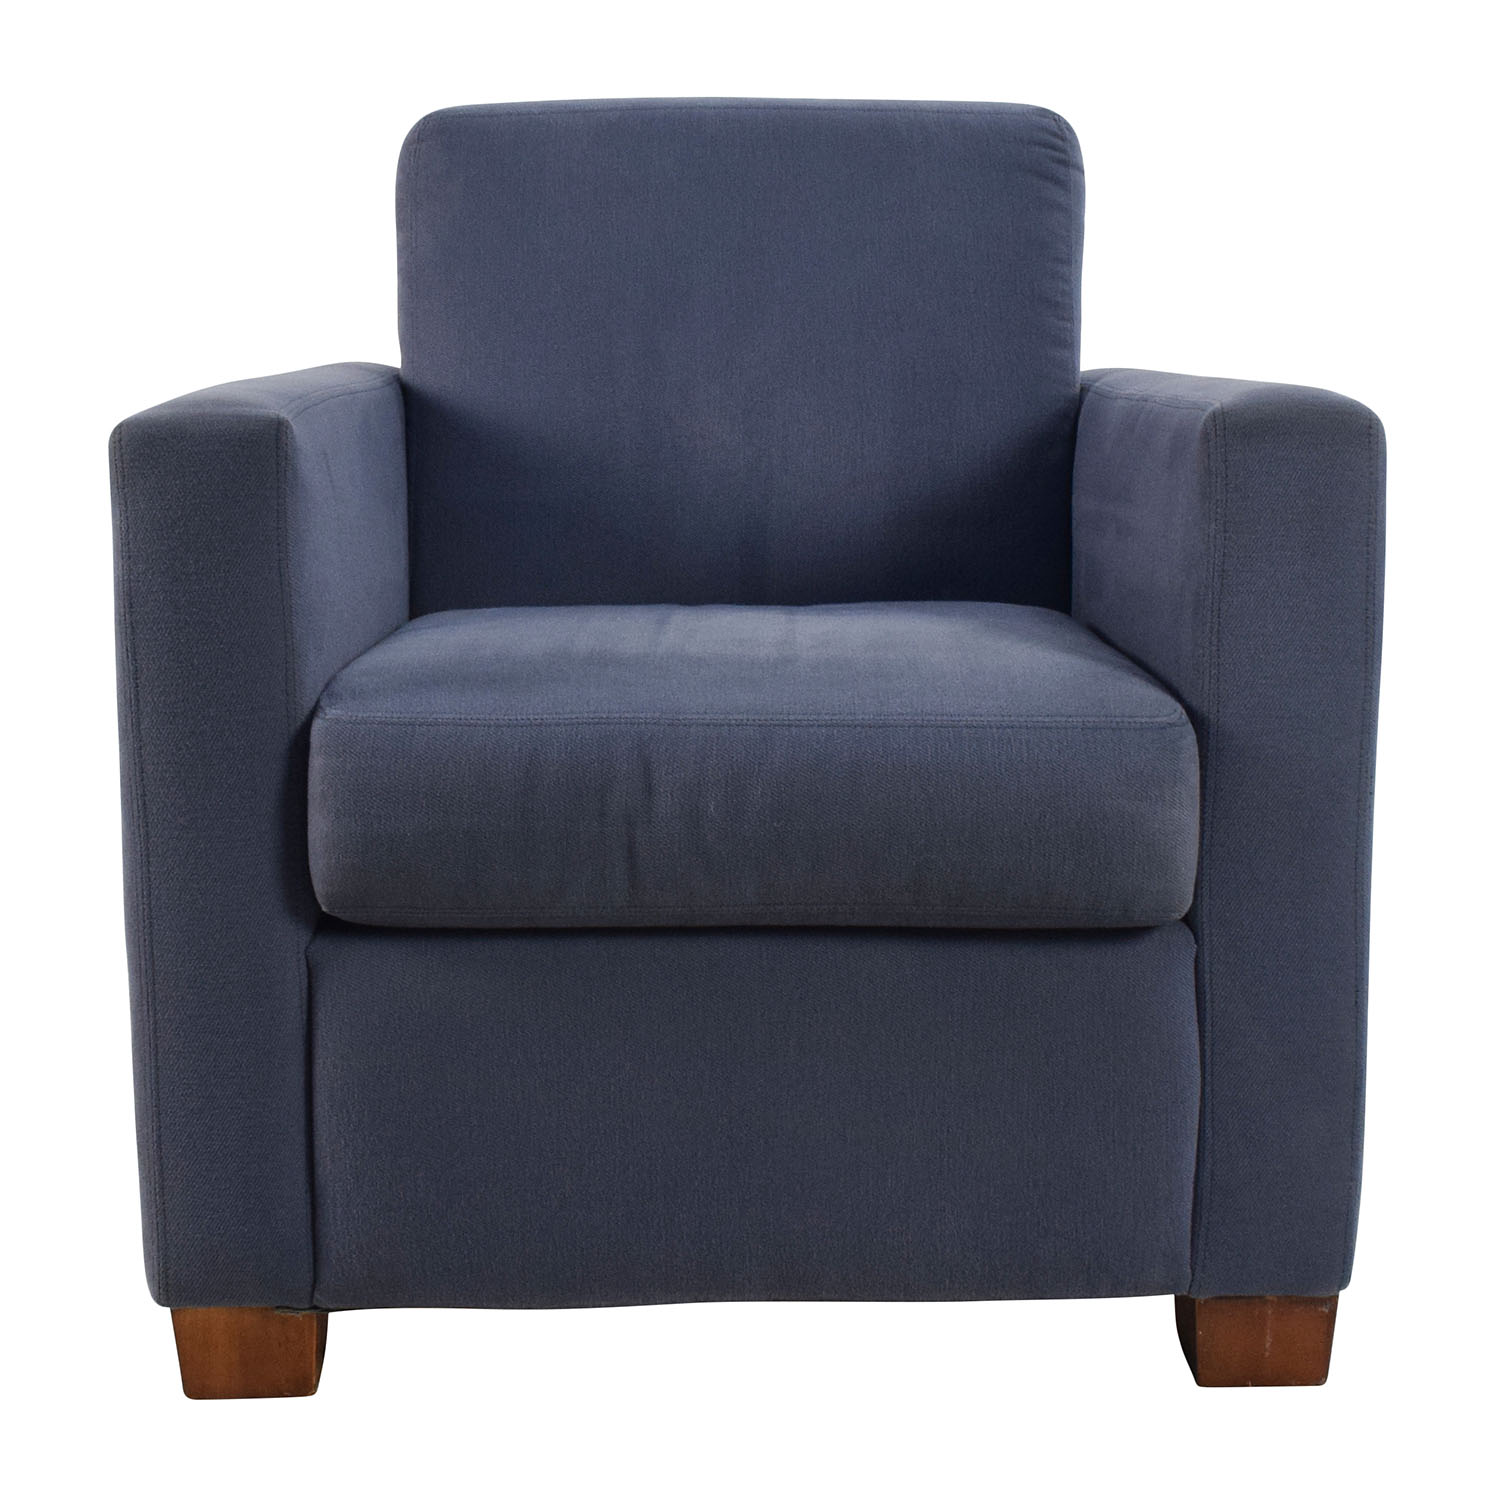 Blue Accent Single Seat Cushion Chair second hand